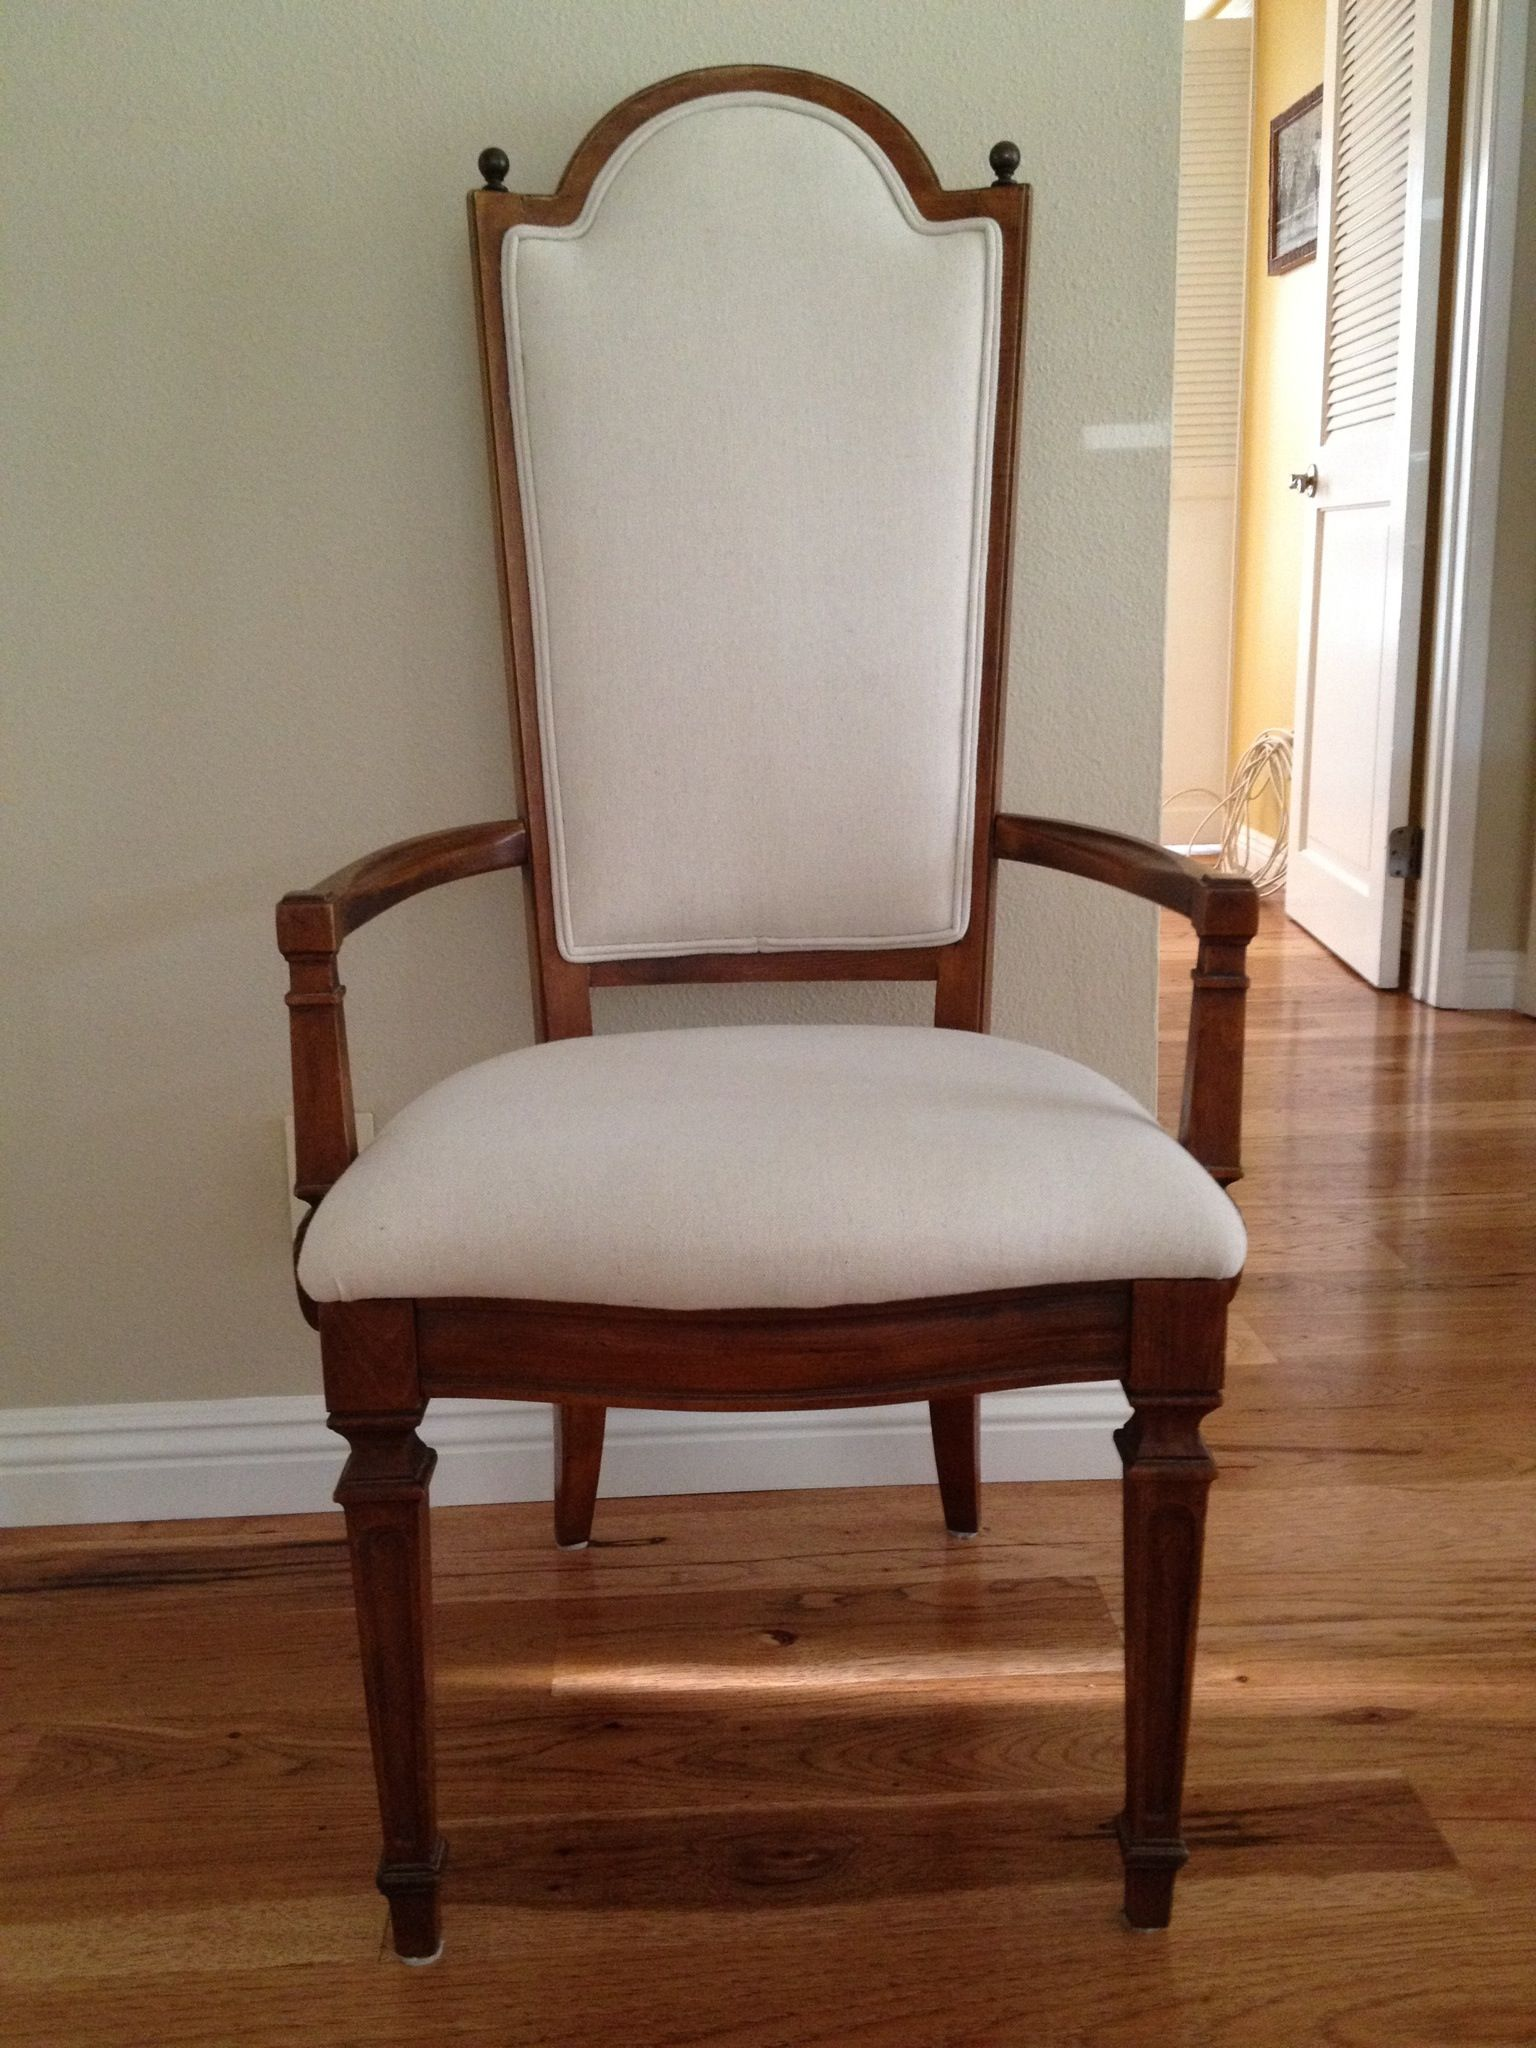 Thomasville dining room chair that had torn Cane back and